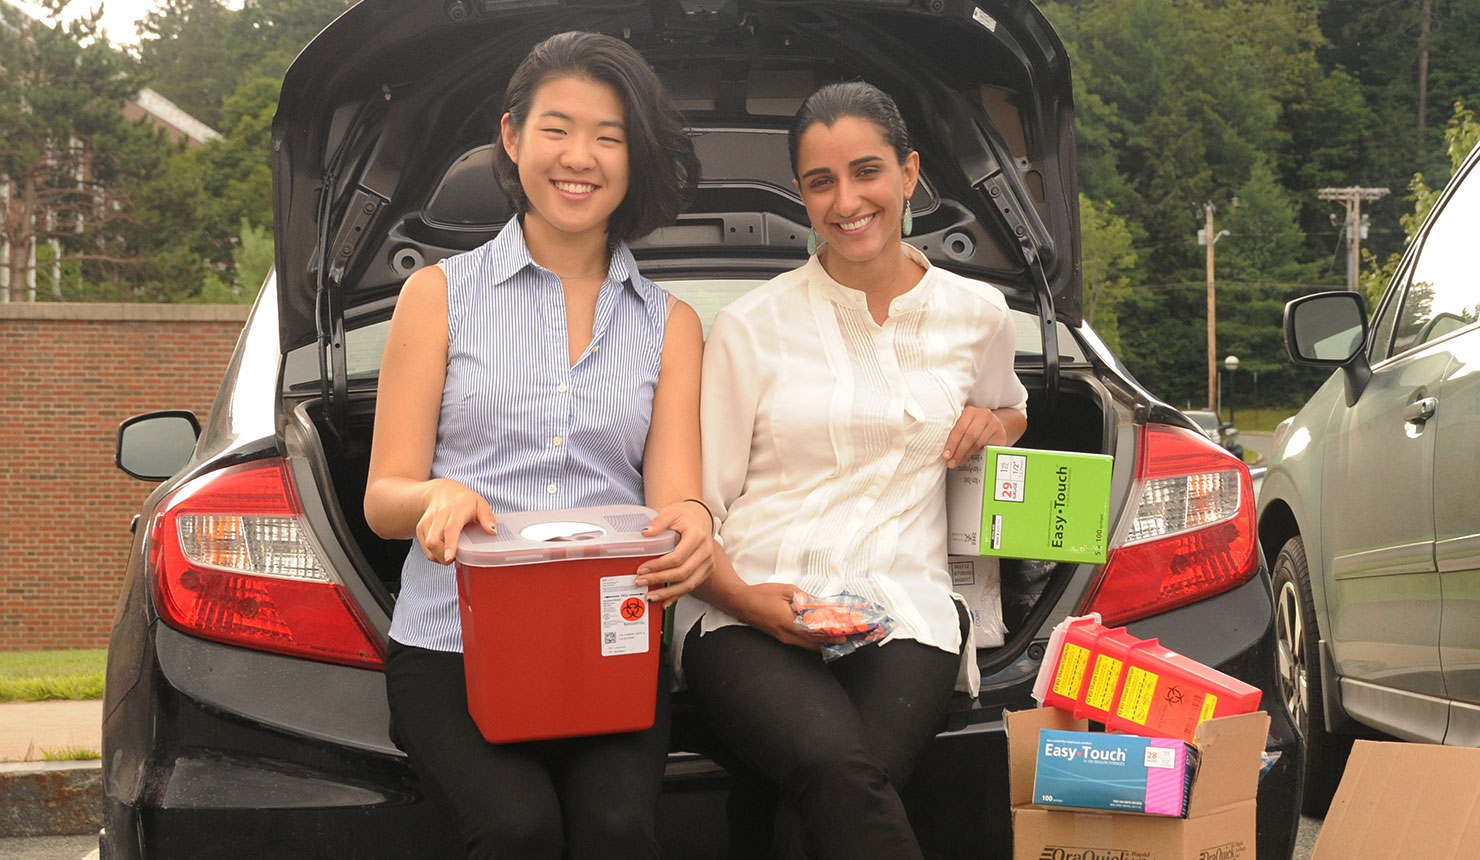 Geisel students Louisa Chen '20 (left) Nasim Azizgolshani '20 (right) load supplies for the harm reduction center they founded in Claremont, NH. (photo by Jon Gilbert Fox)